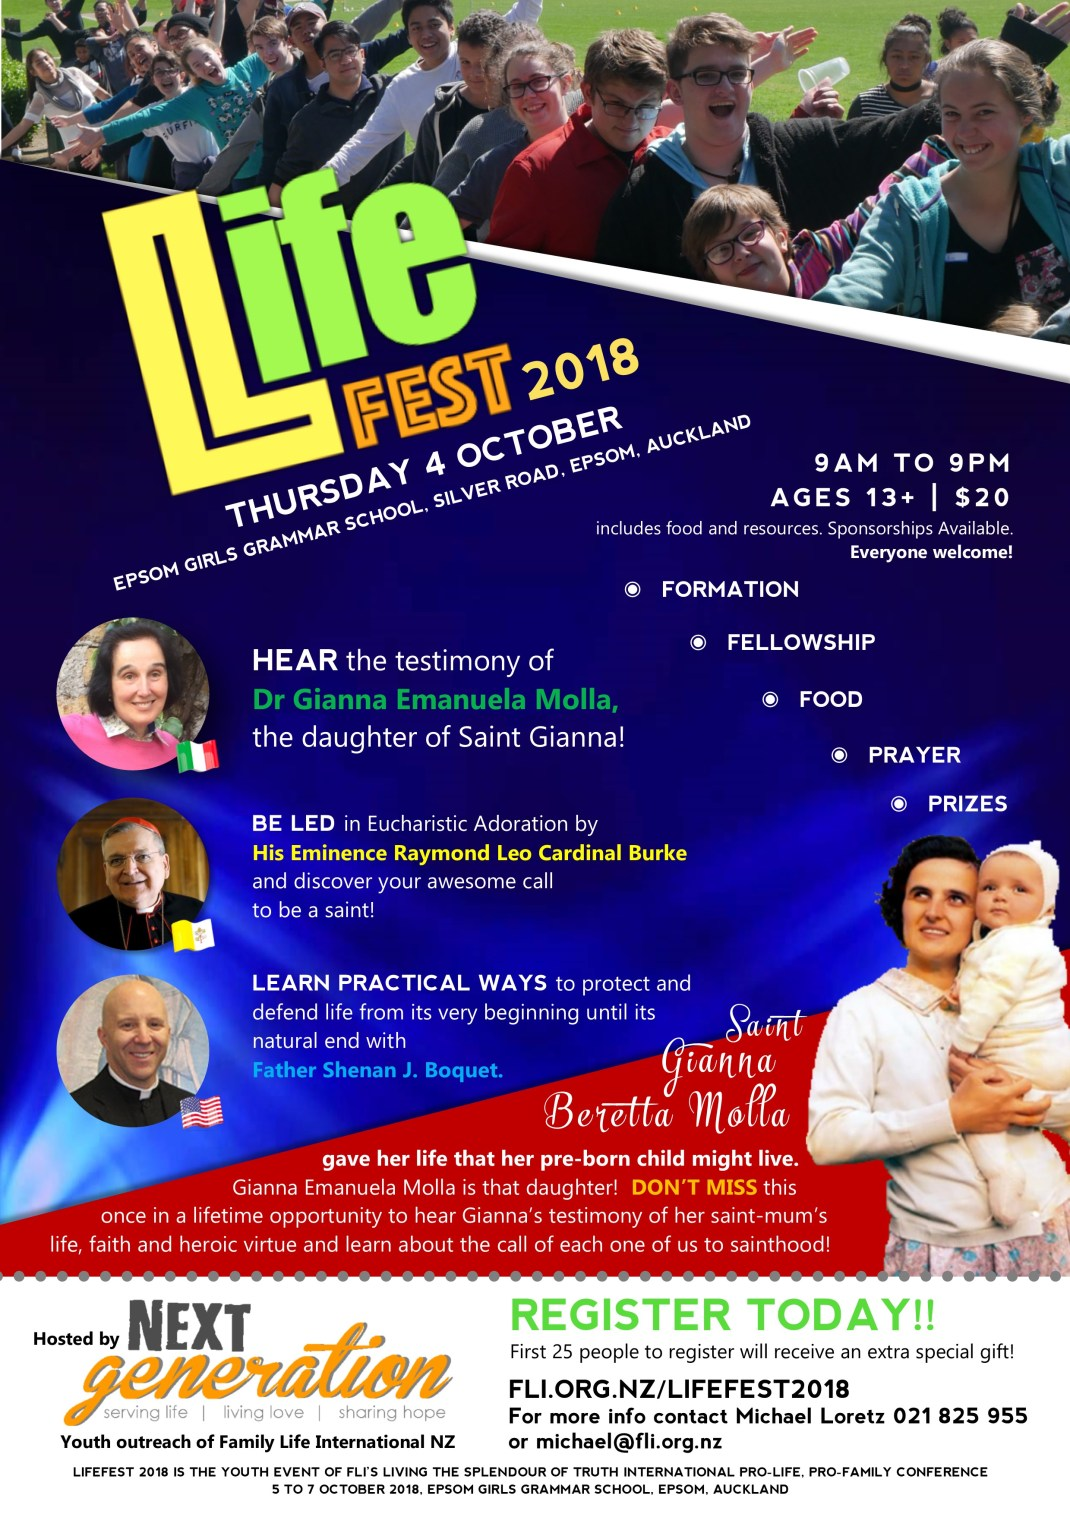 LifeFest 2018 Thursday 4 October Epsom Girls Grammar School